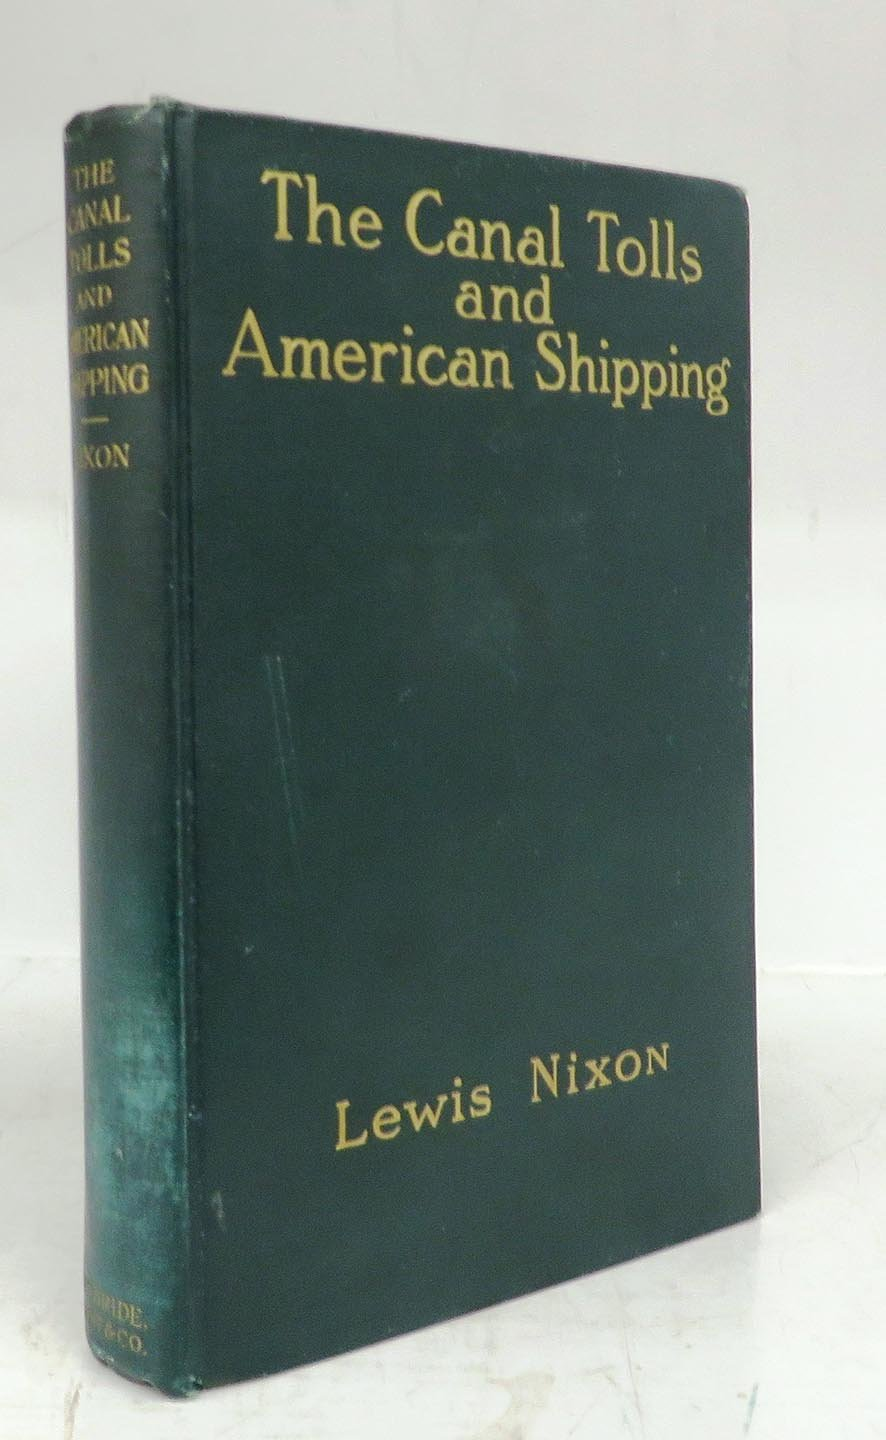 The Canal Tolls and American Shipping